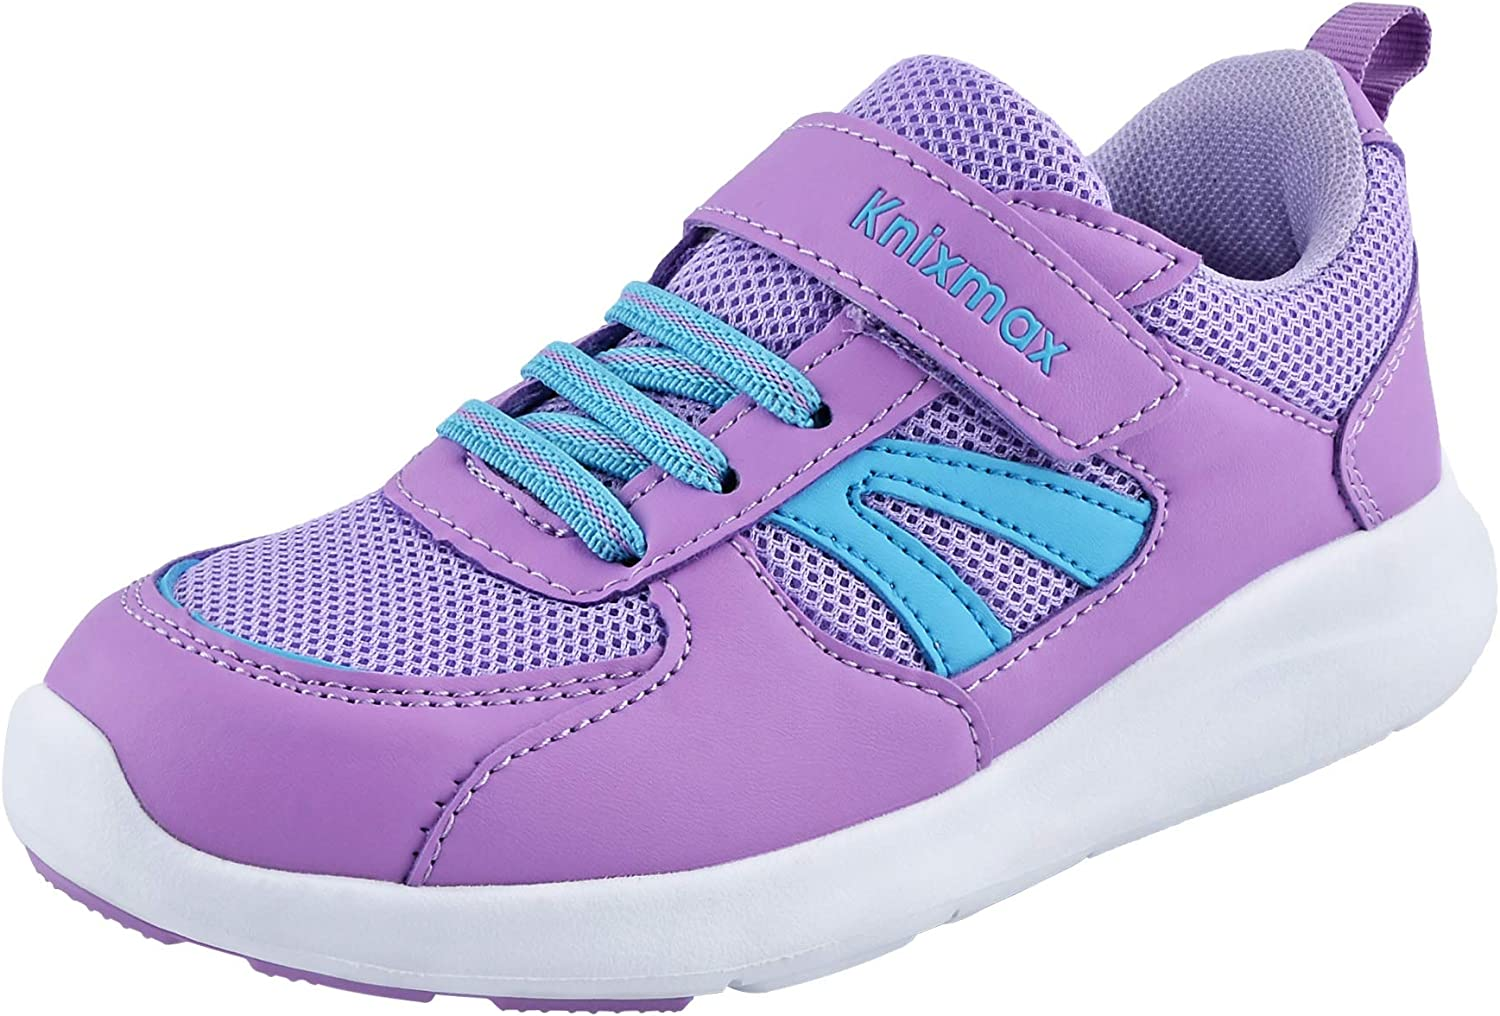 Knixmax Boys Limited Special Price Girls Sneakers Little Running Walking Kids Sport Sh OFFer